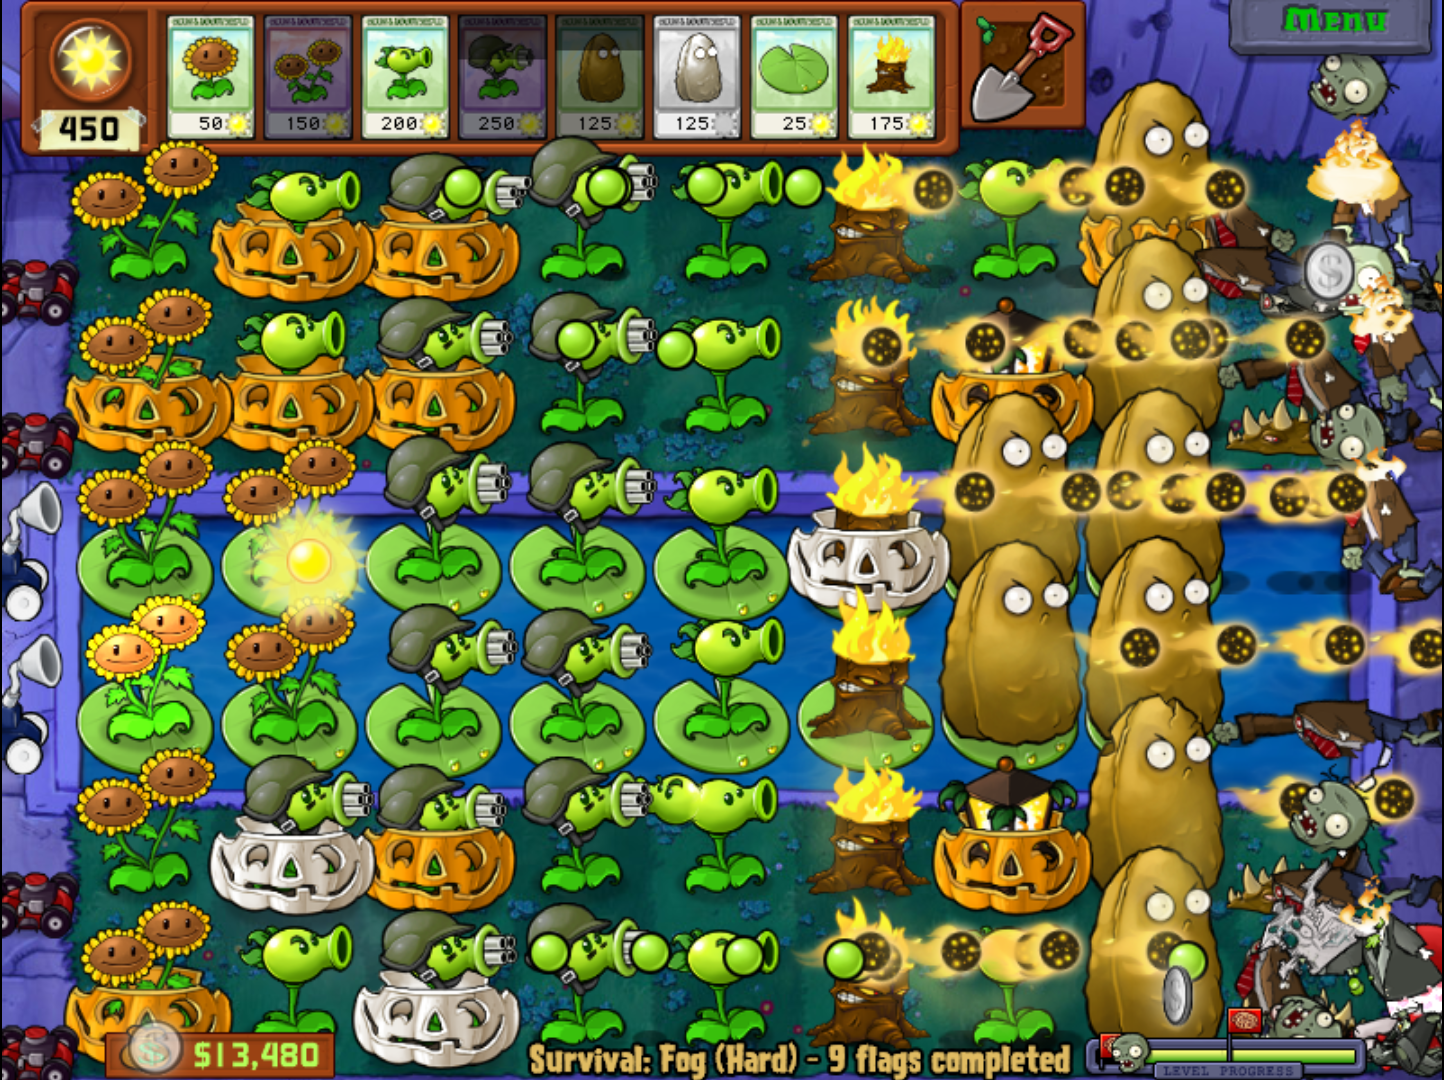 plantas vs zombies full - granforo.cowhosting.net